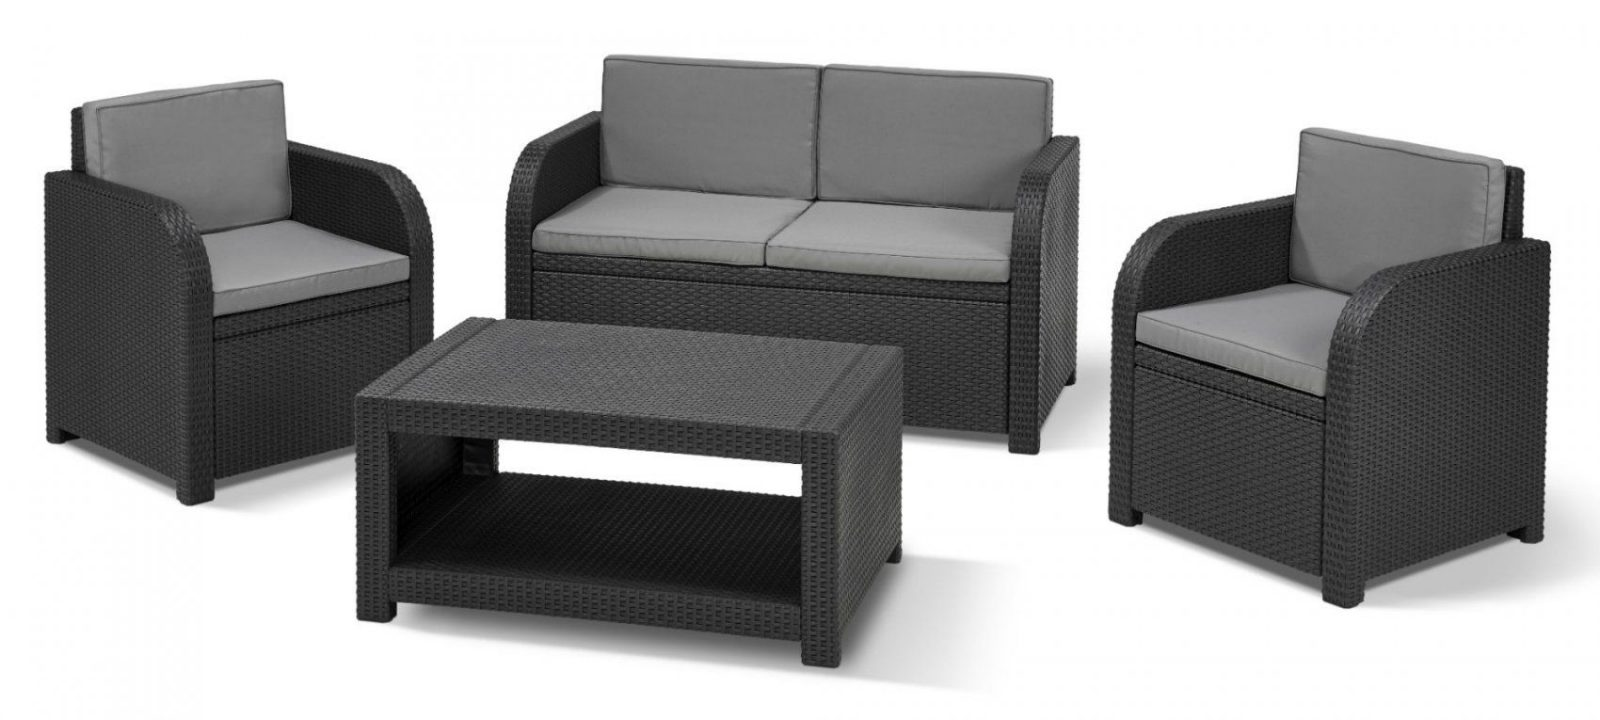 Lounge Sets  Loungesets  Allibert von Allibert Lounge Set Merano Photo